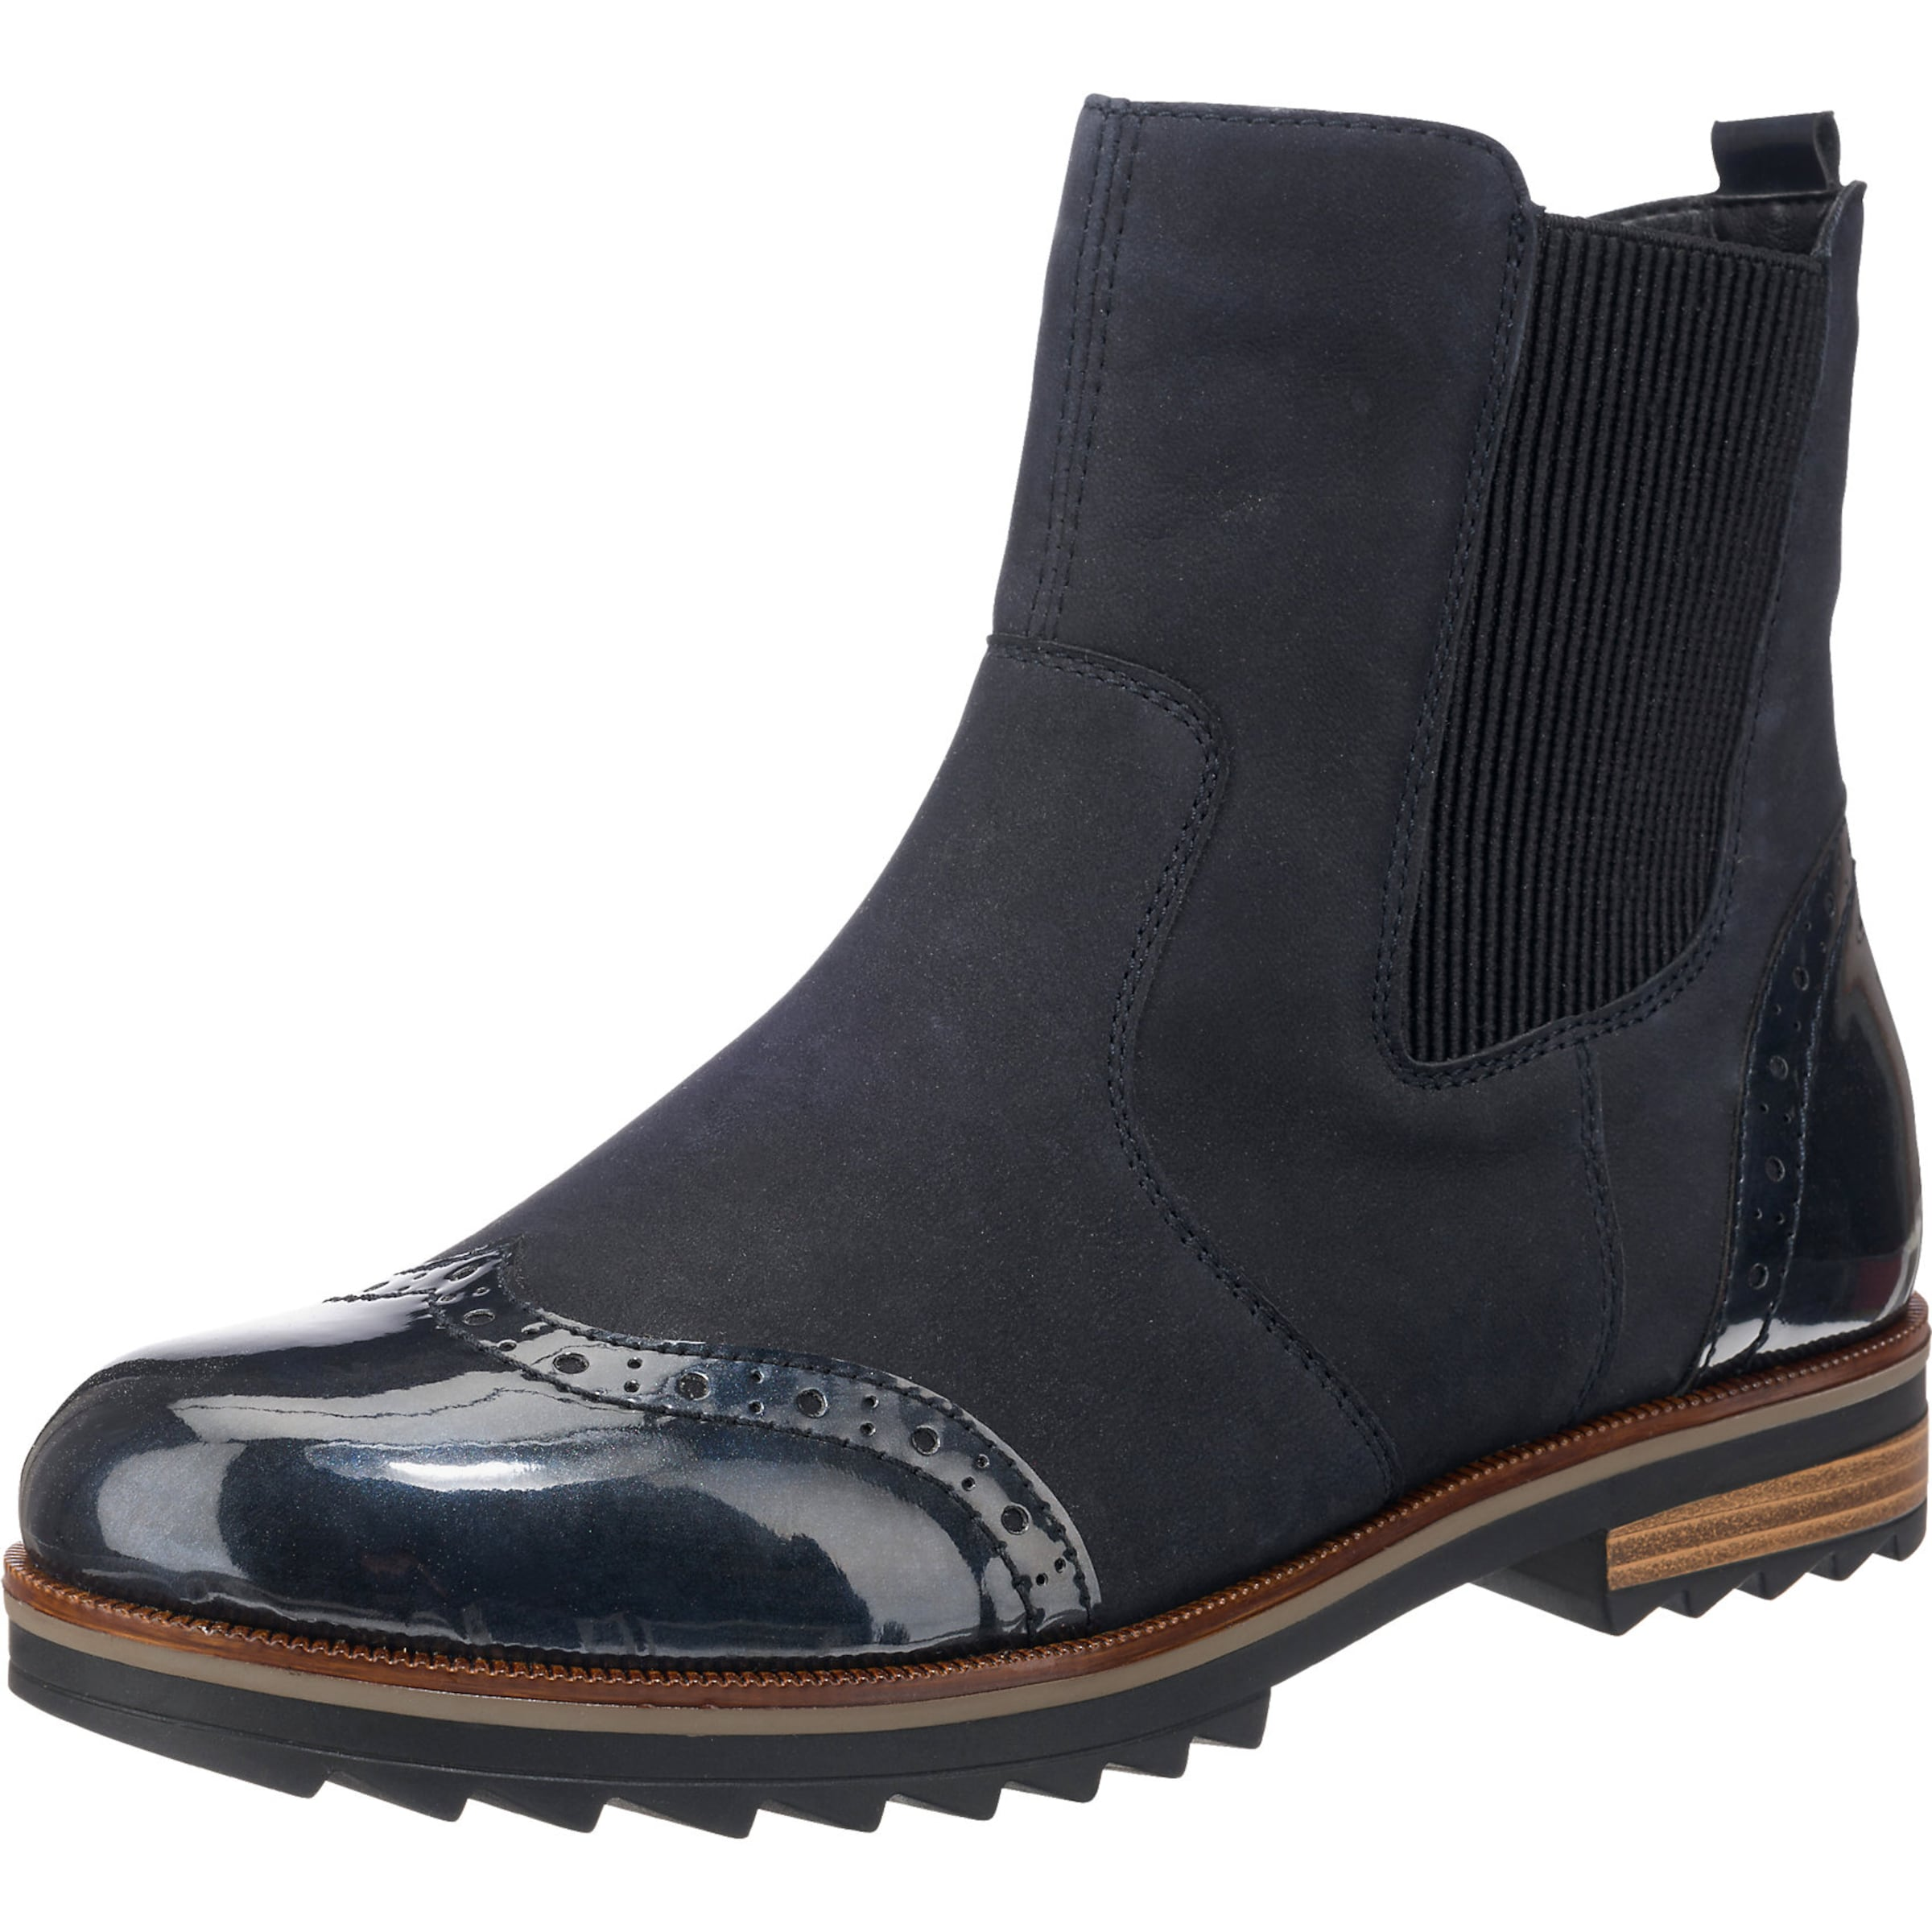 Chelsea In Remonte Remonte Boots Navy reQdxCBoW